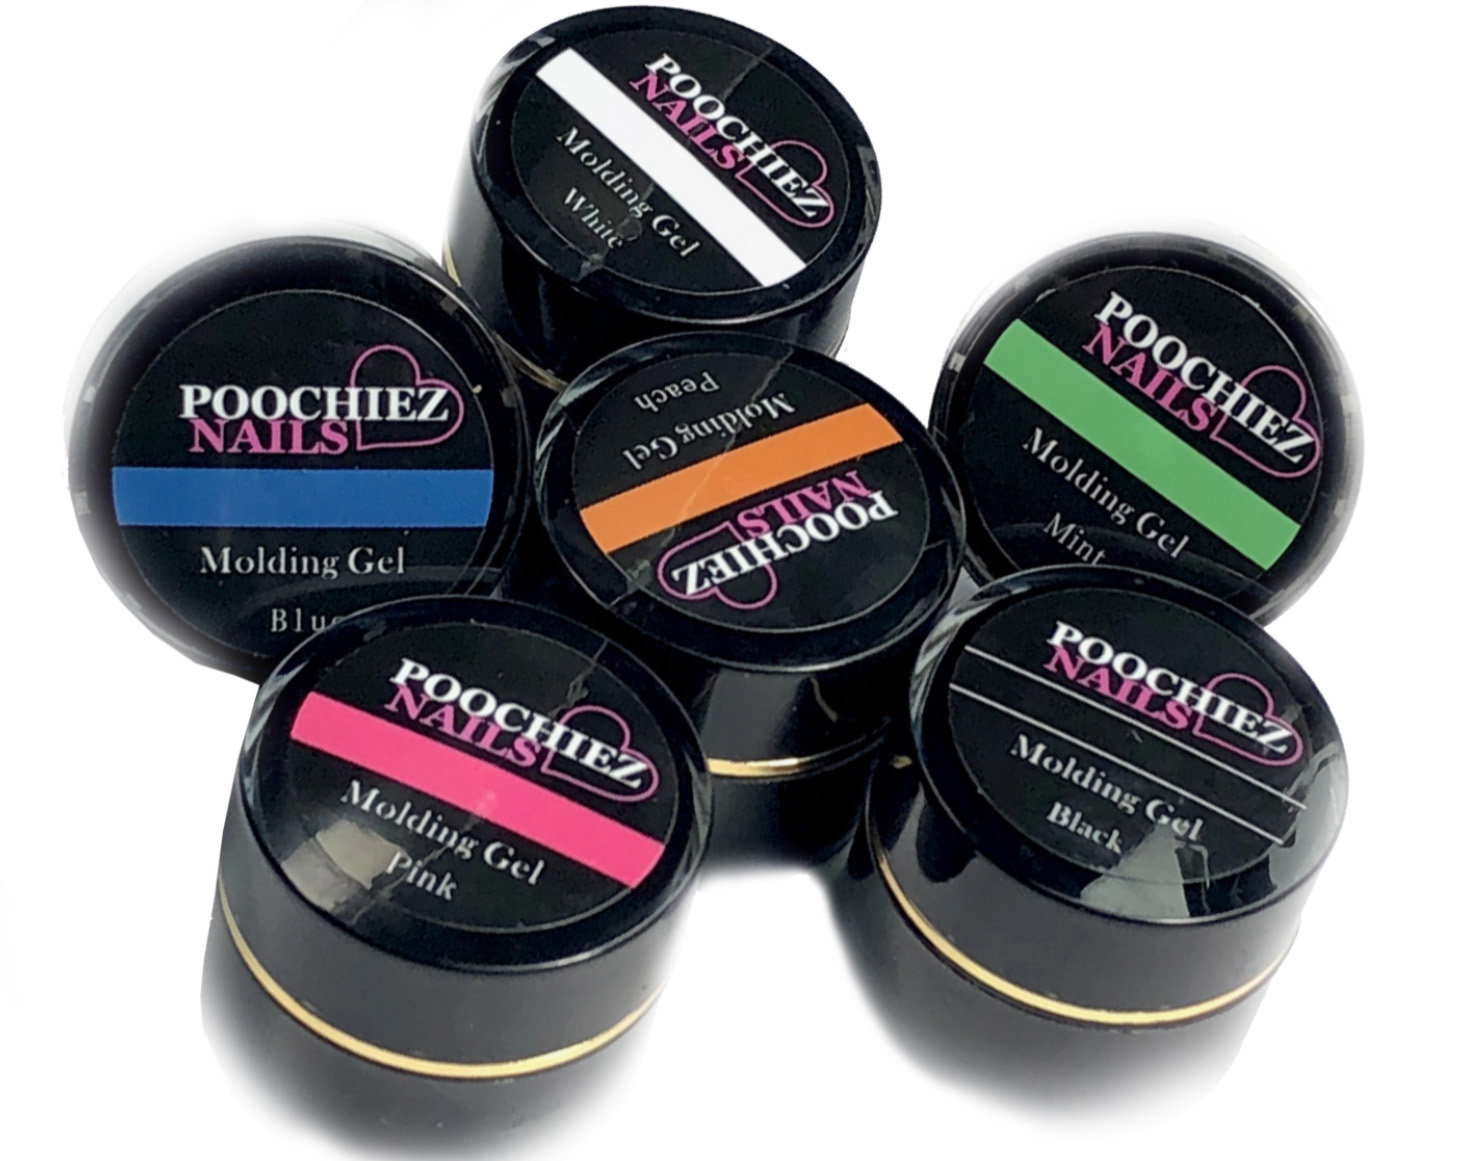 POOCHIEZ NAILS MOLDING GEL GET ALL 6 10G EACH